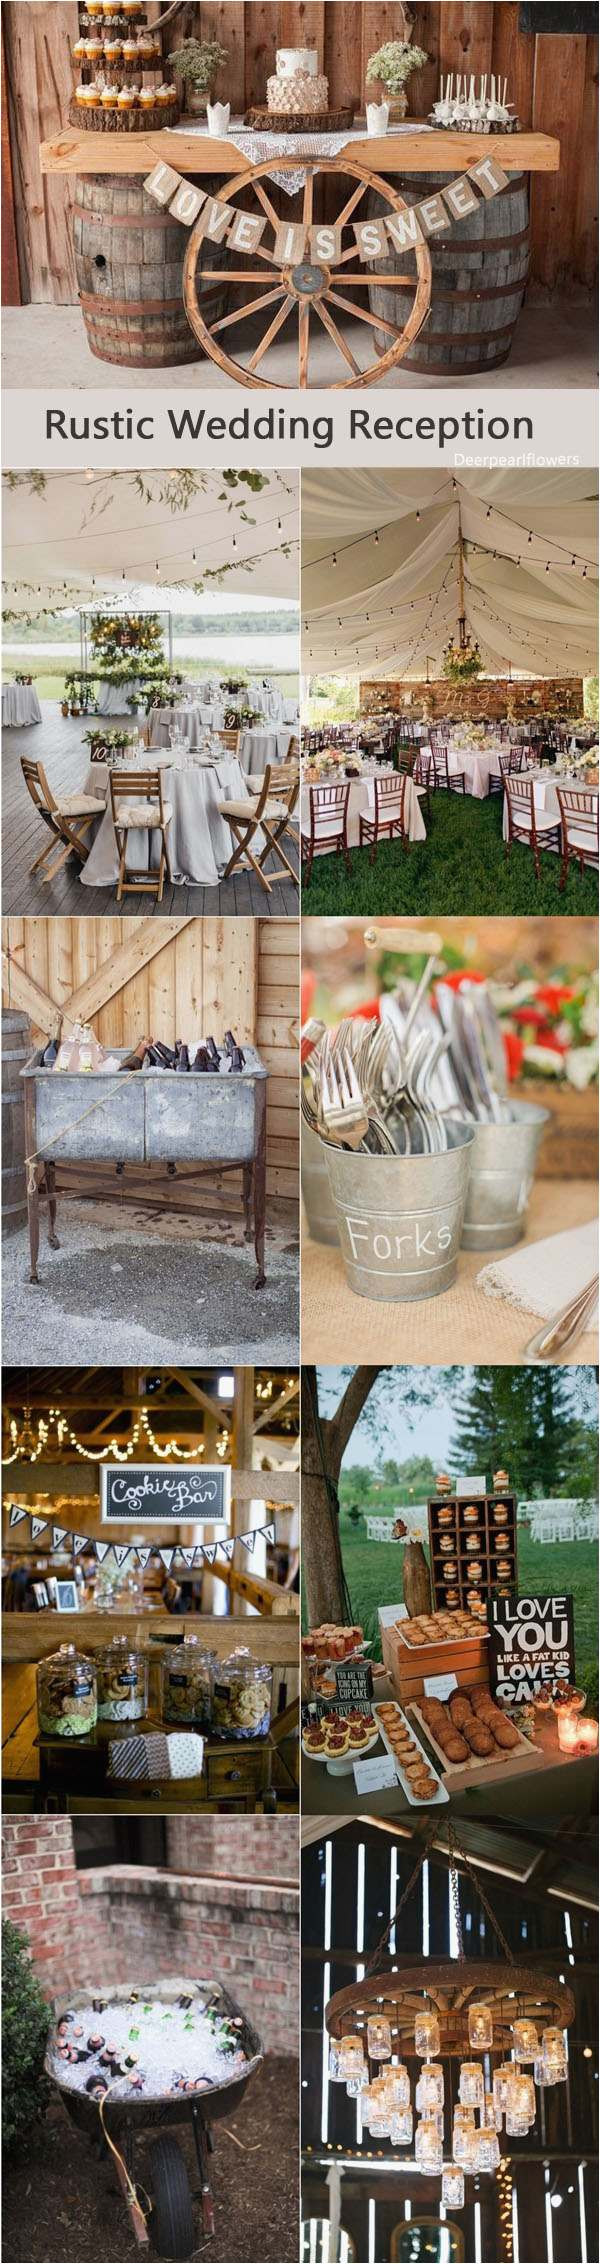 rustic metal vase of rustic wedding table ideas awesome vases metal for centerpieces throughout rustic wedding table ideas photo 70 easy rustic wedding ideas that you could try in 2018